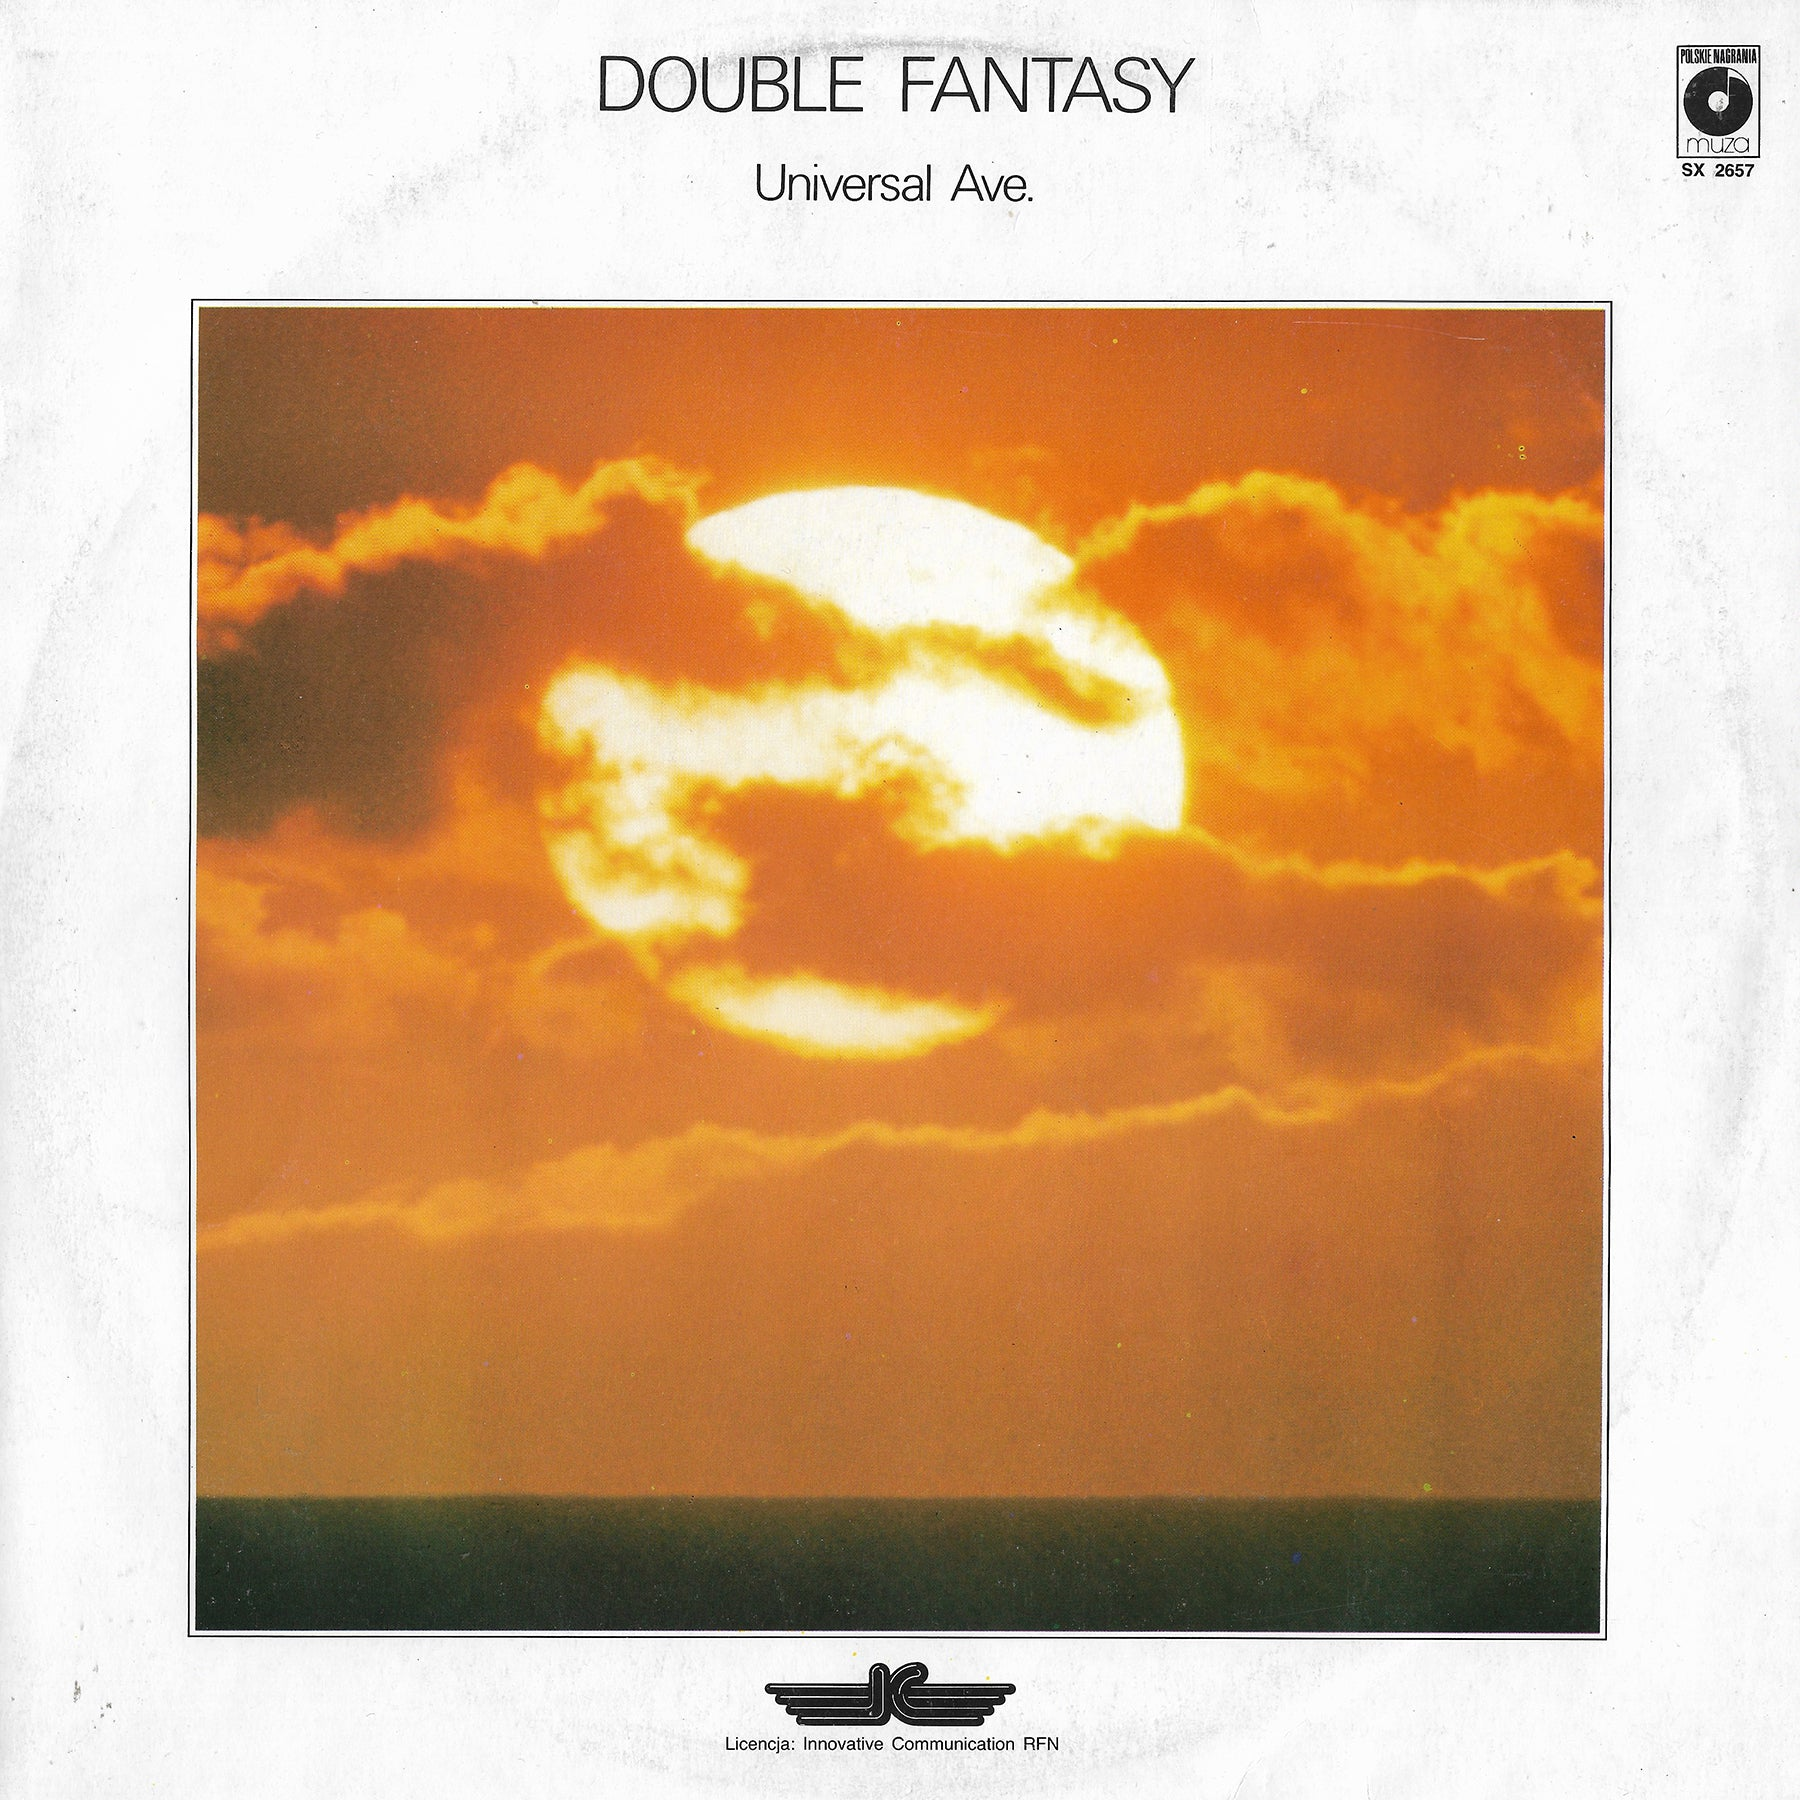 Double Fantasy - Universal Ave.